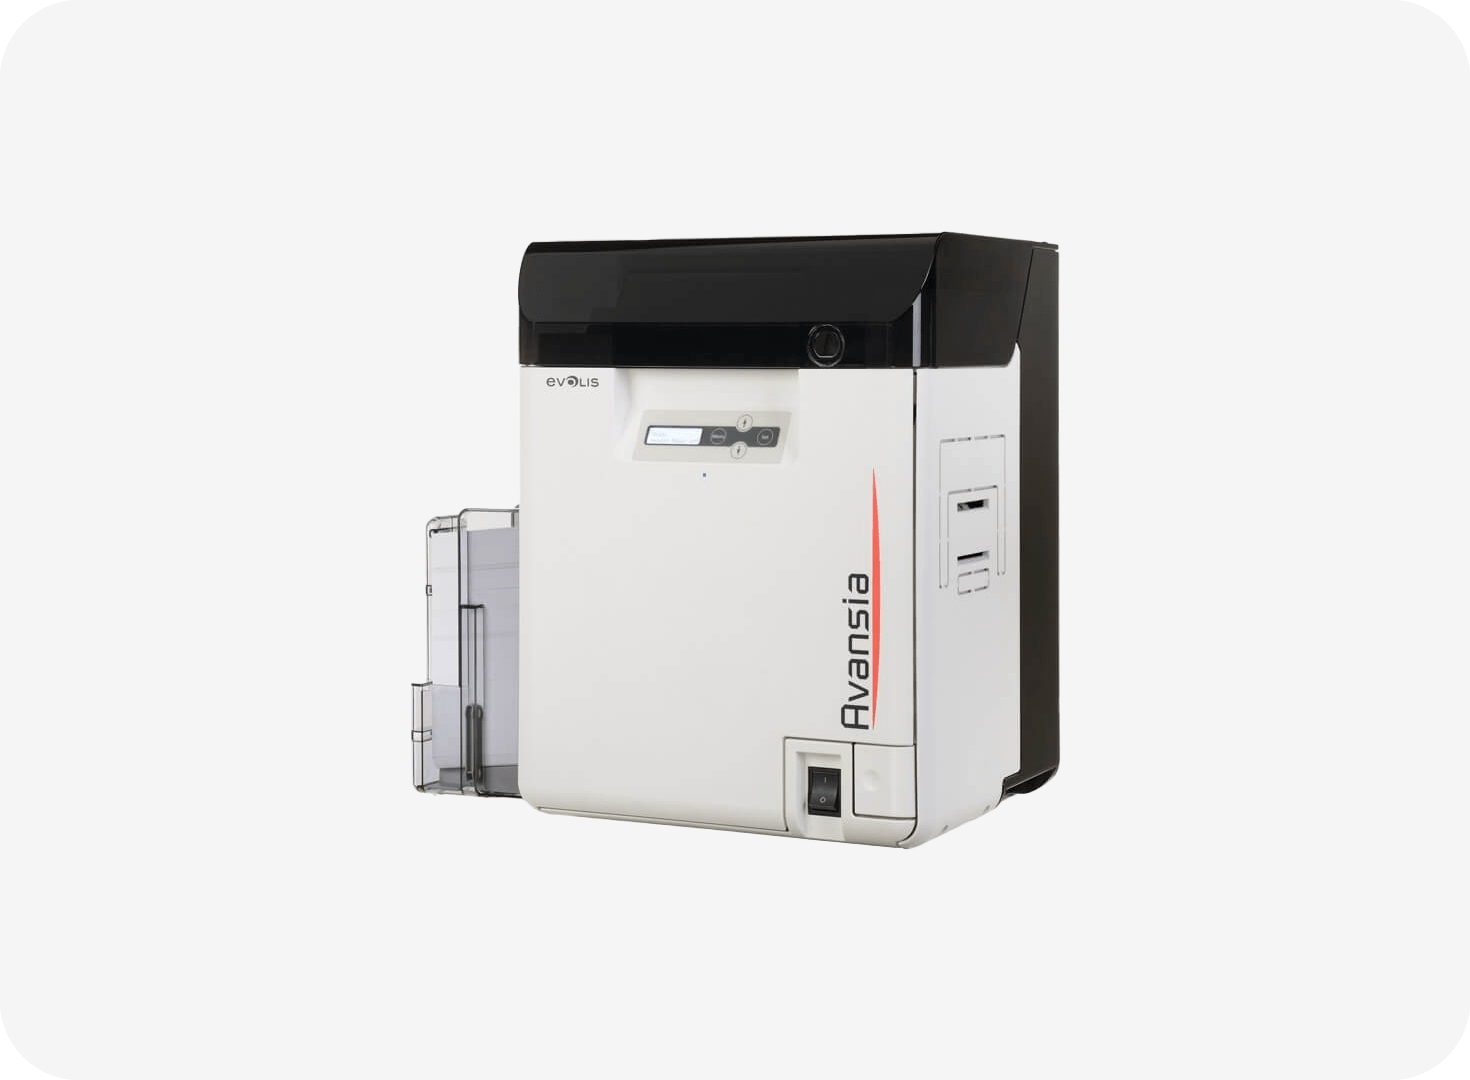 Evolis Avansia Lamination Card Printer